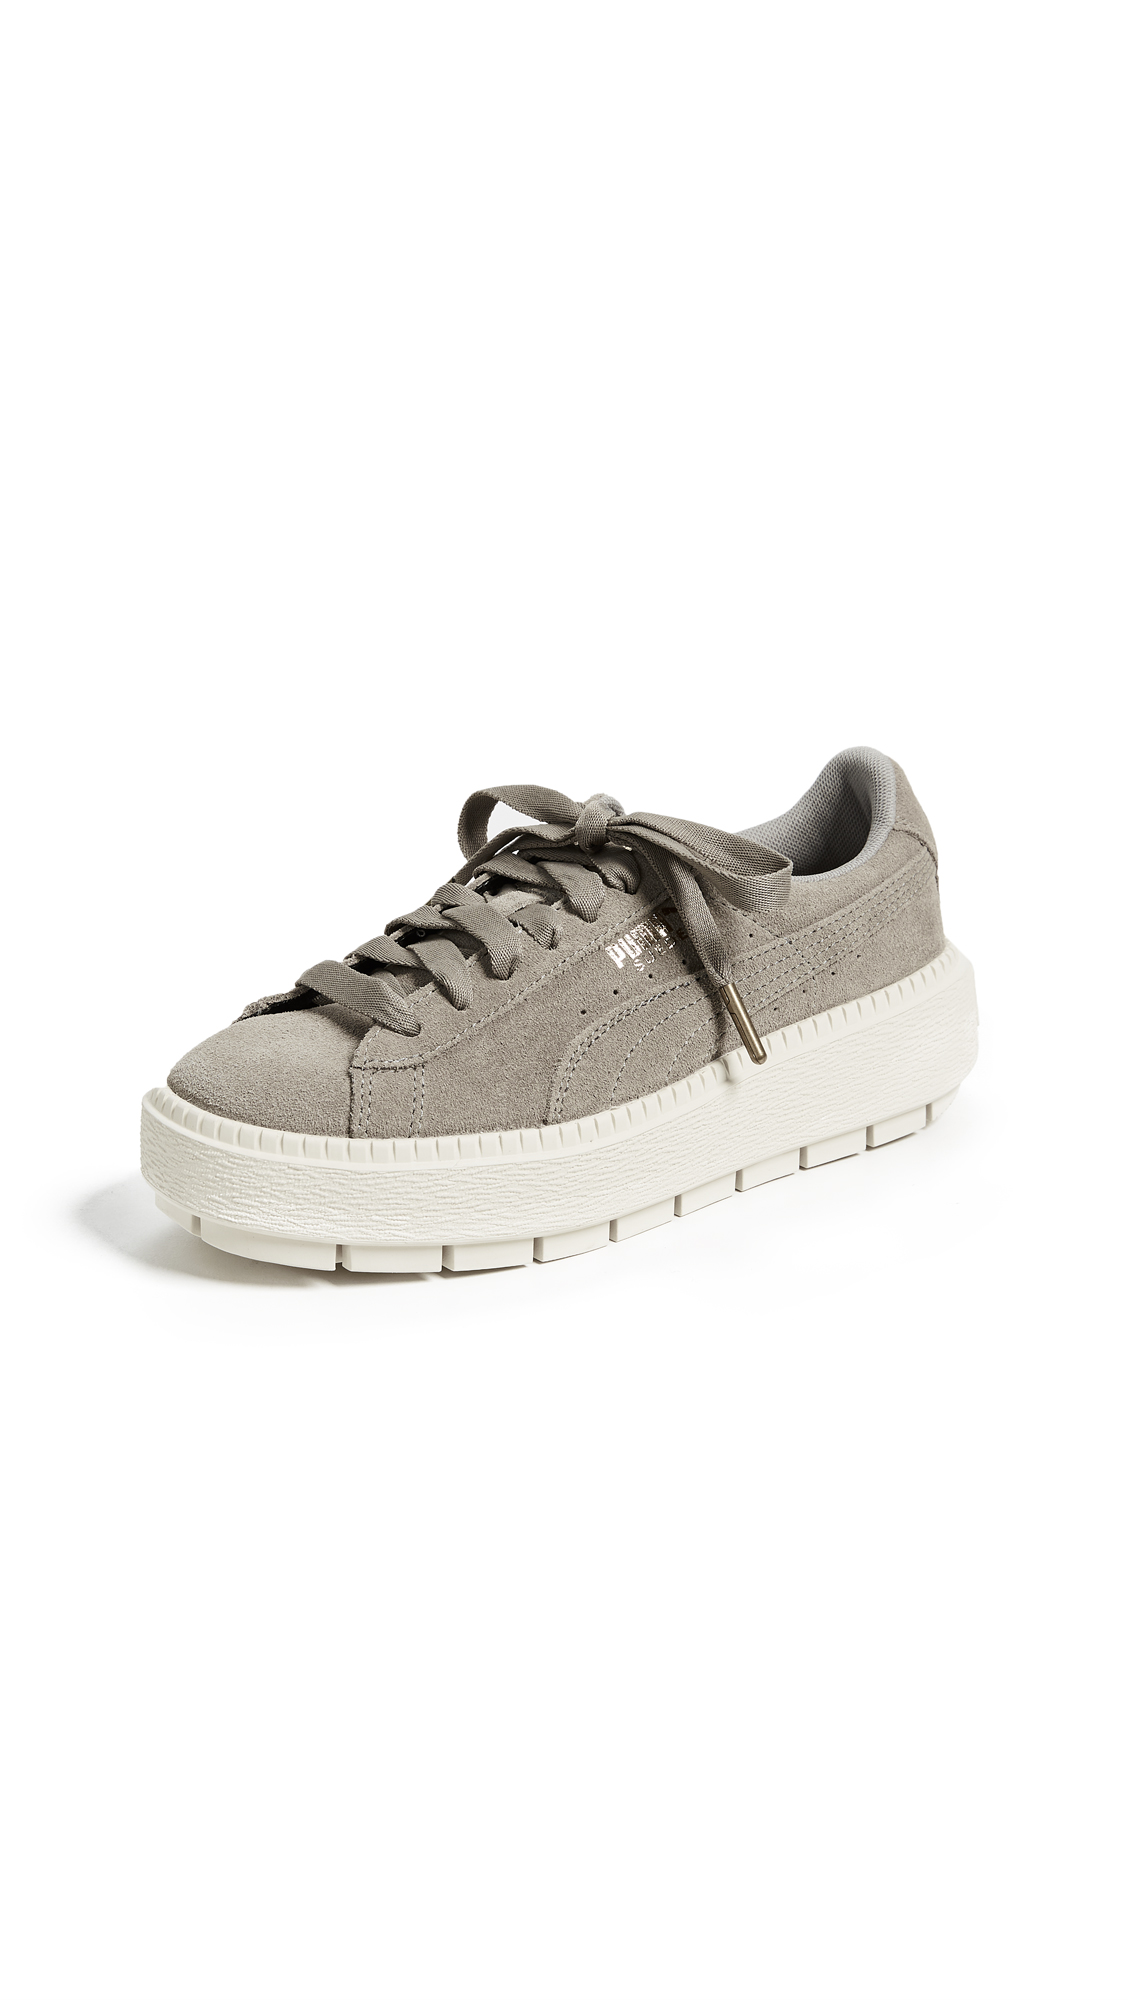 Photo of PUMA Suede Platform Trace Sneakers - buy PUMA shoes